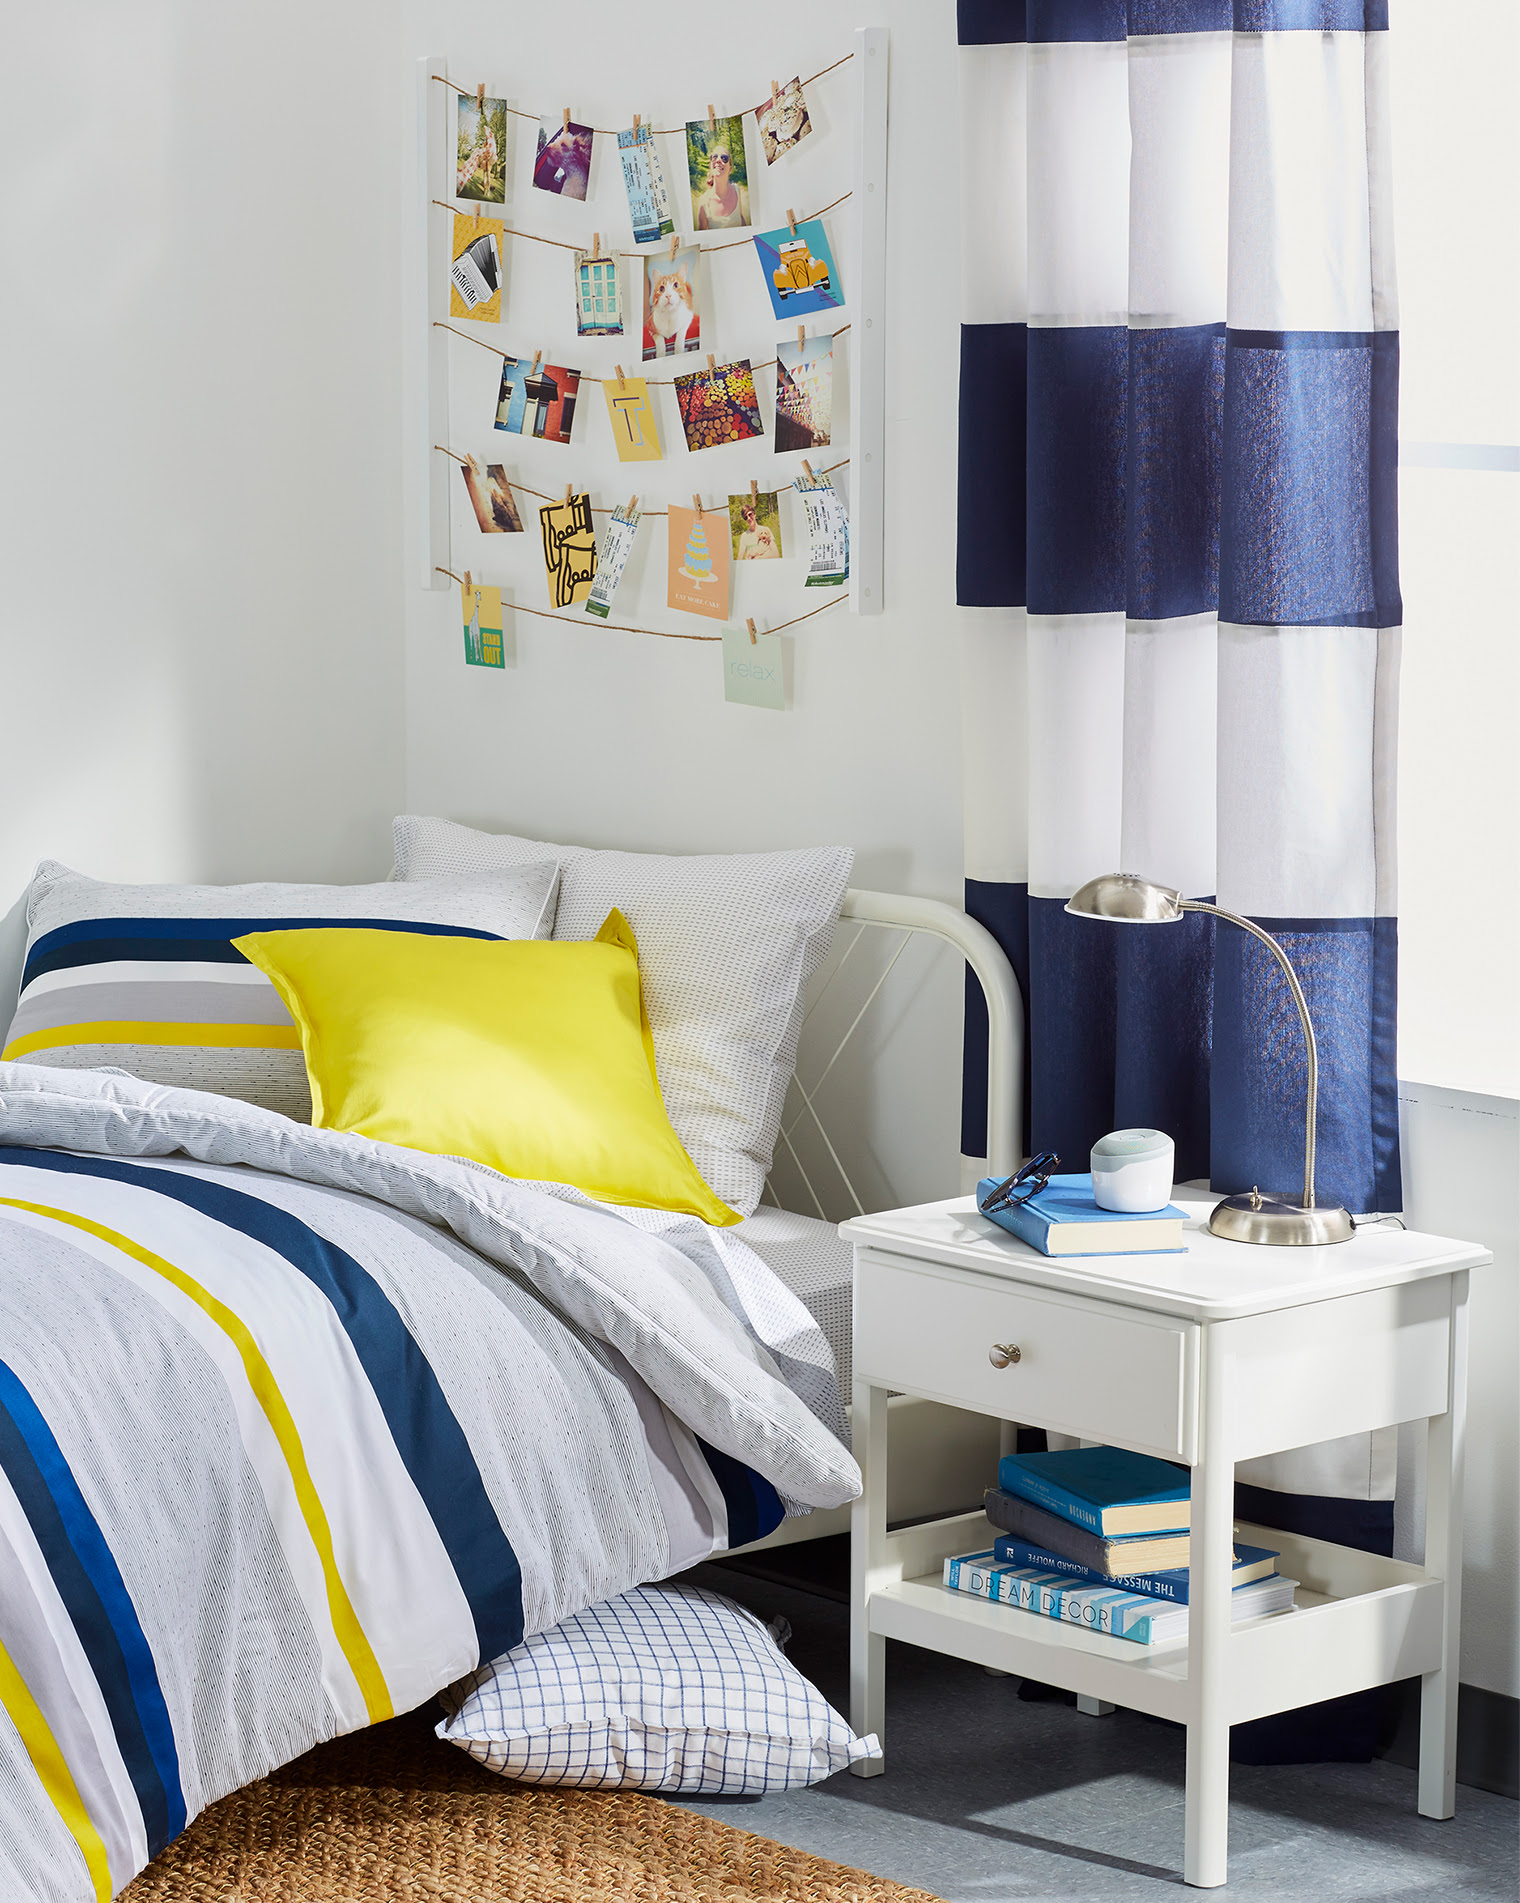 Five Steps To Ace Dorm Room Decor Bright Bazaar by Will